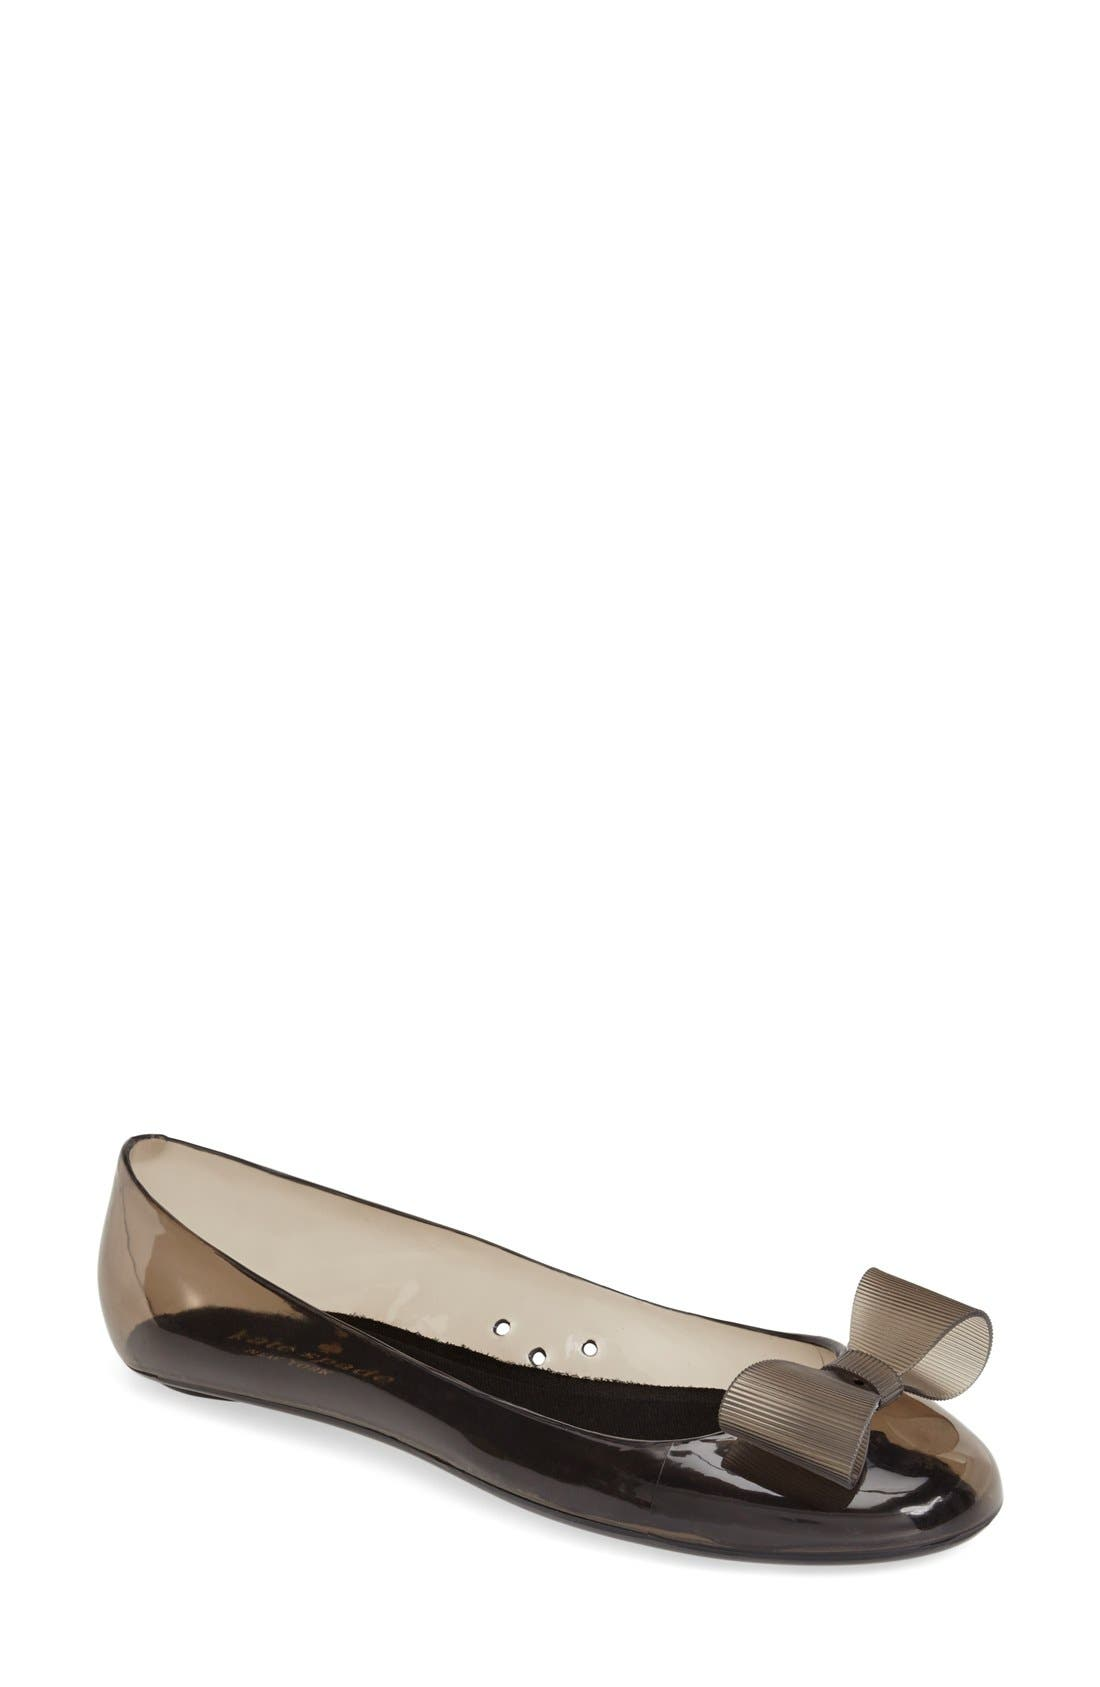 Main Image - kate spade new york 'jove' jelly skimmer flat